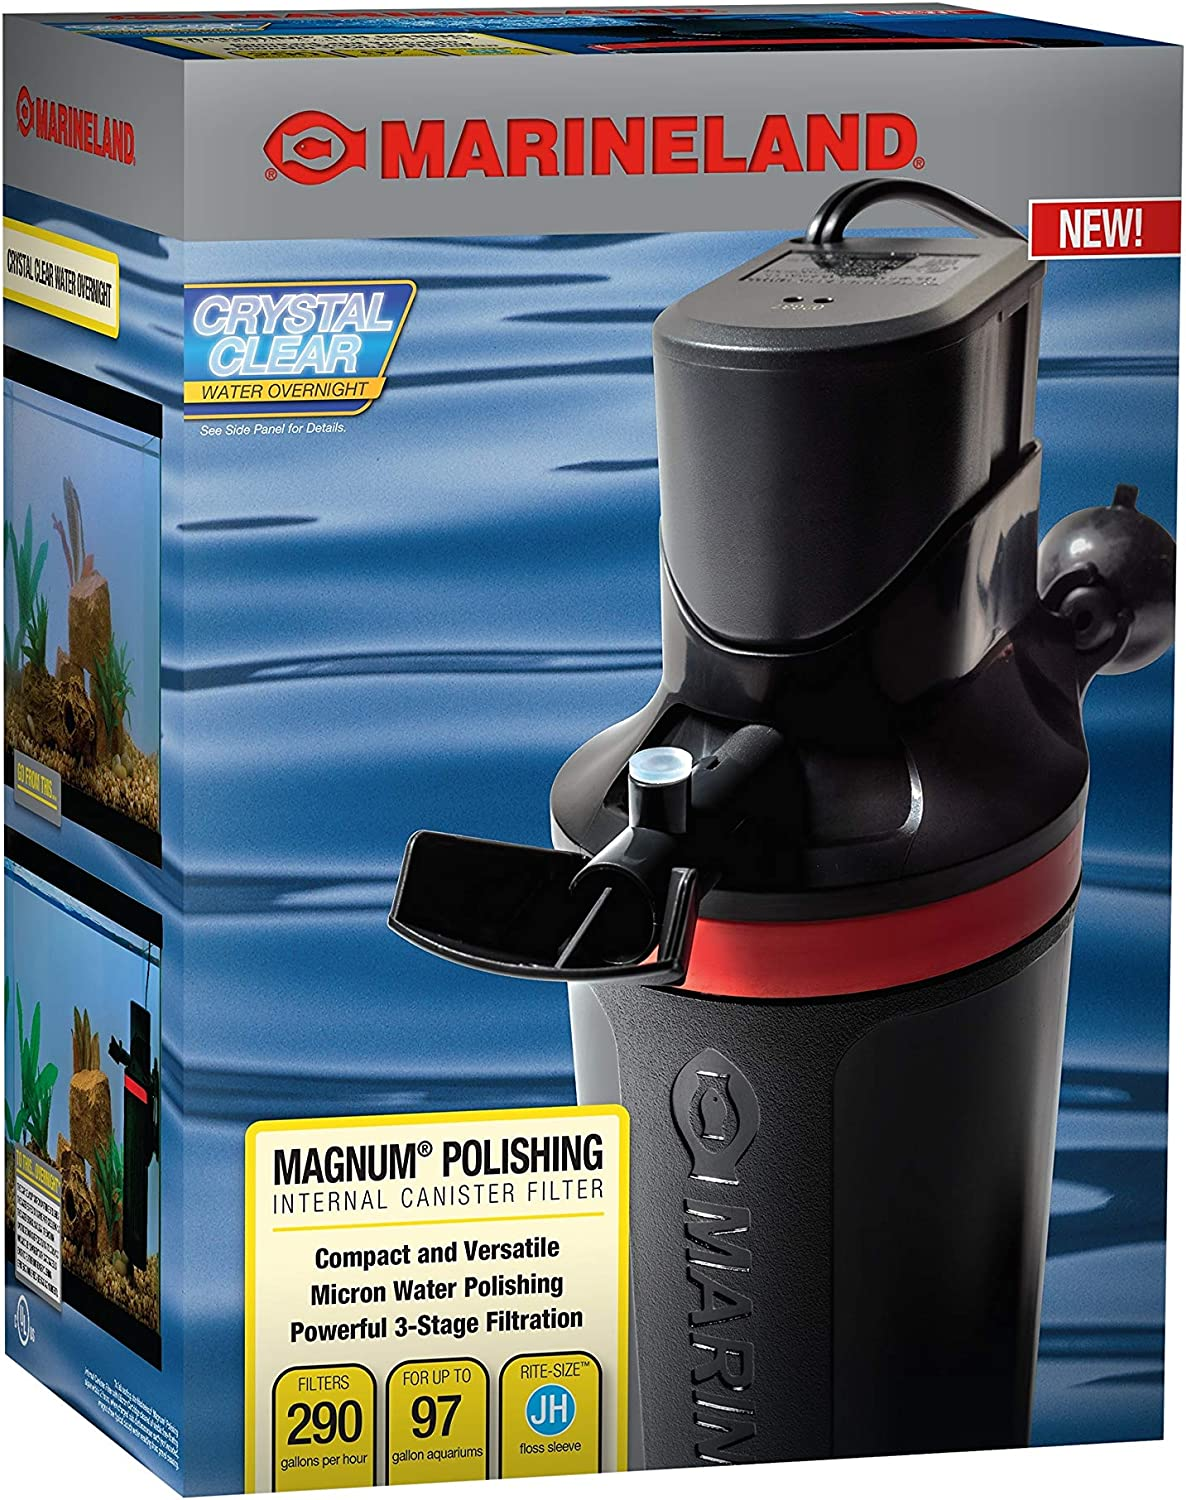 MarineLand Magnum Polishing Internal Canister Filter